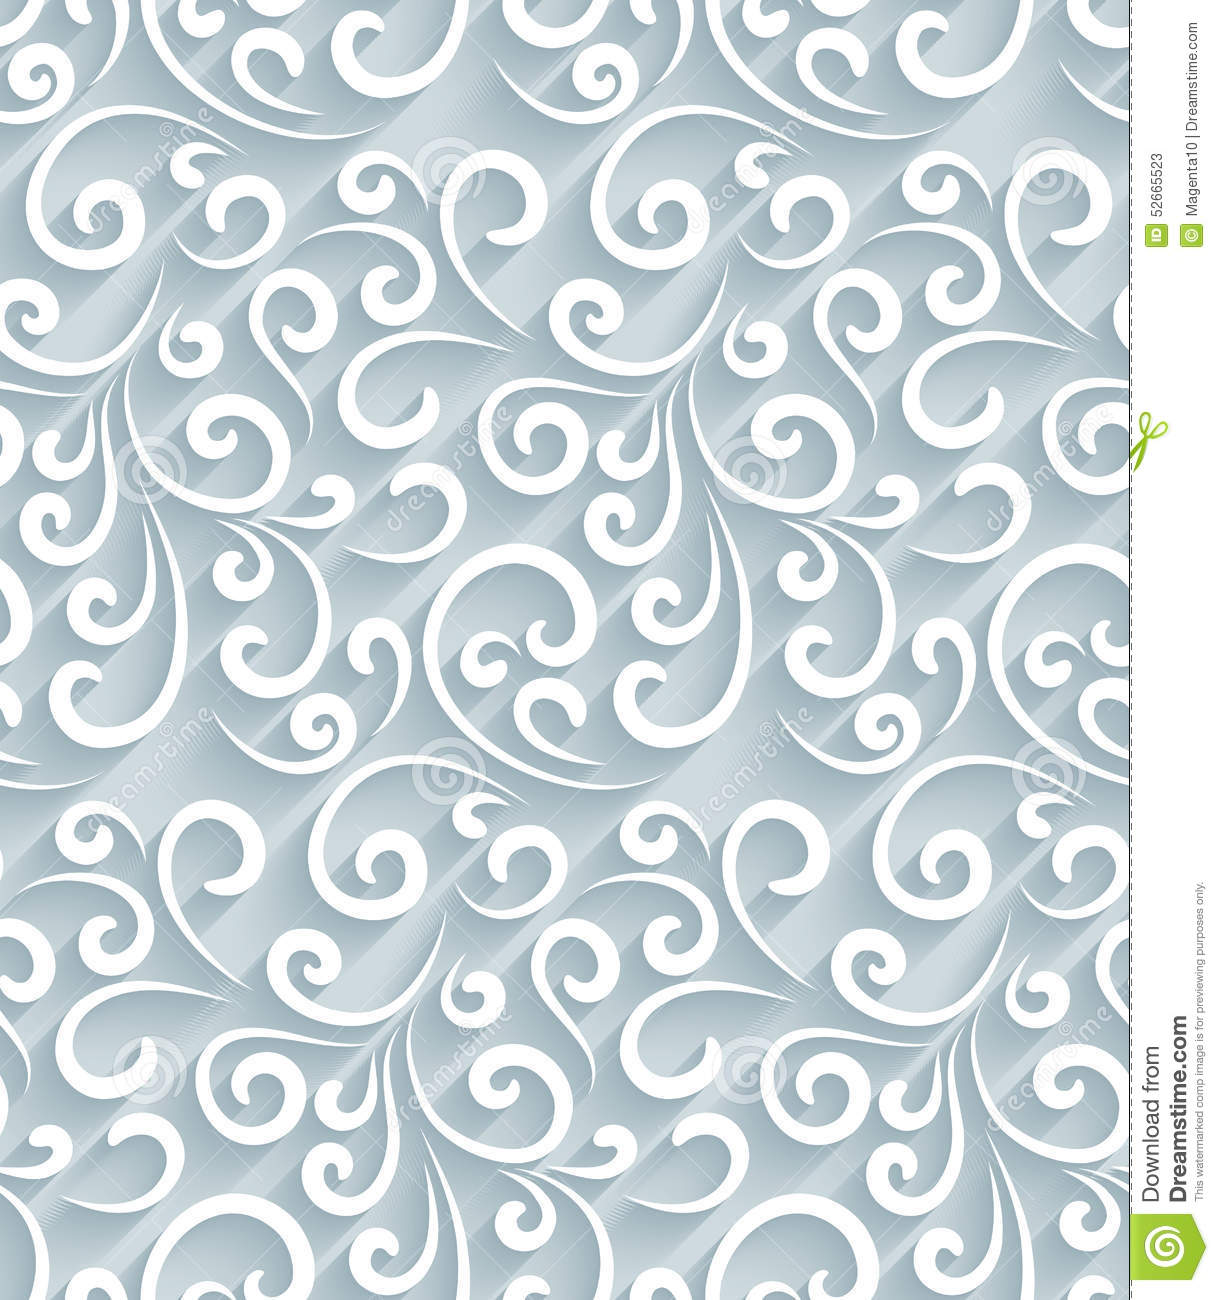 Paper Swirls Pattern Stock Vector Image 52665523